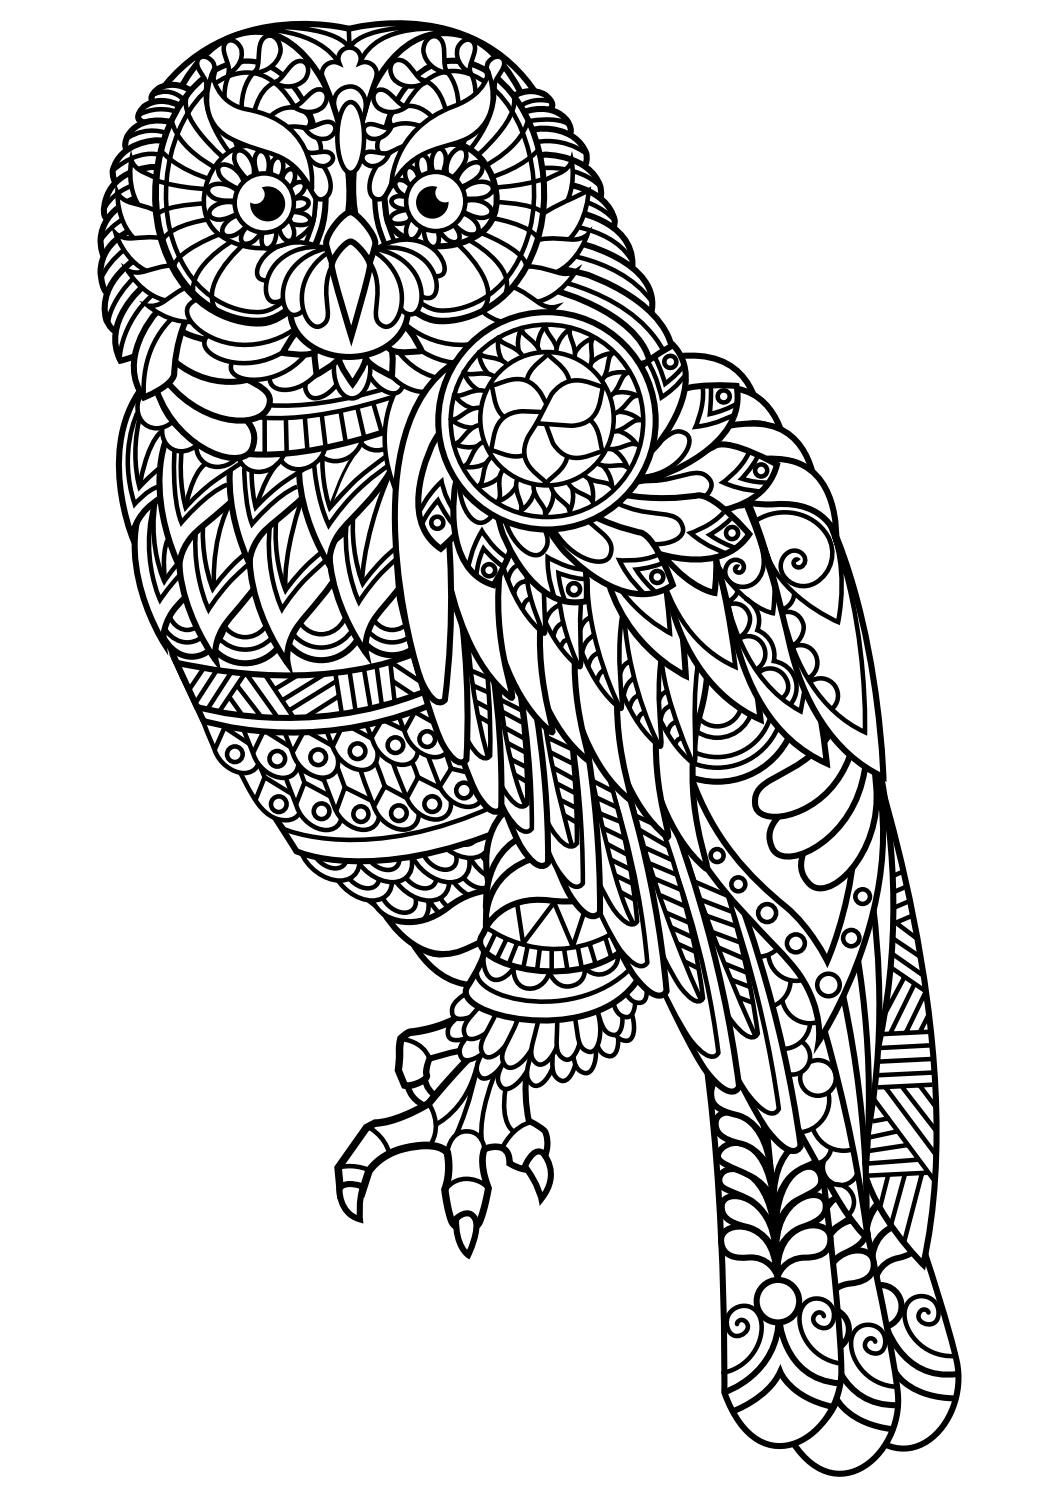 Adult Wolf Coloring Pages At Getcolorings